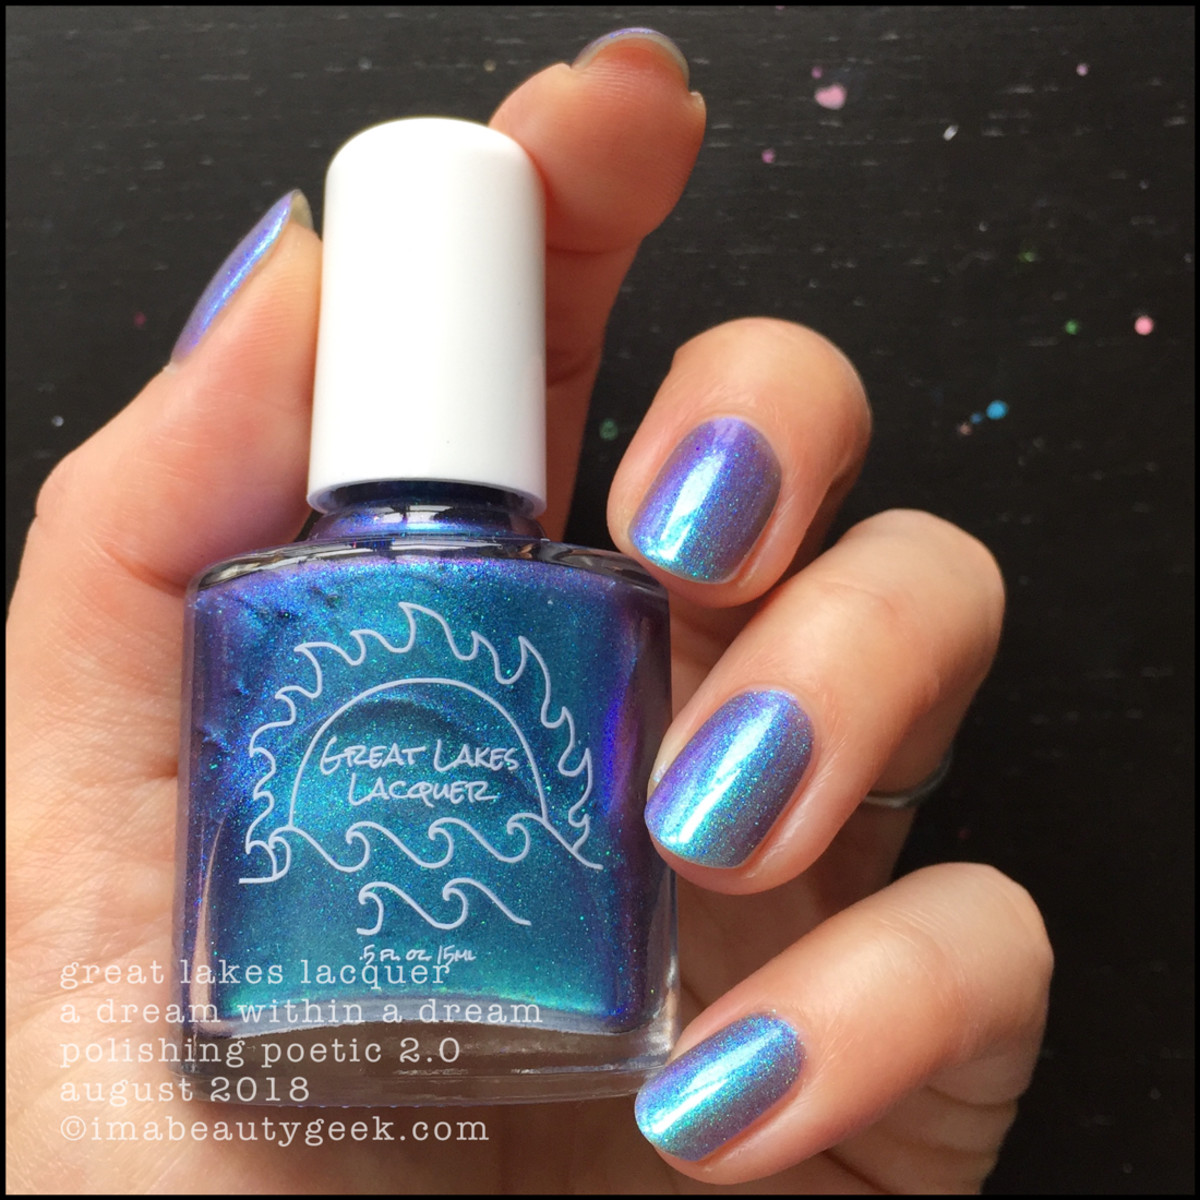 Great Lakes Lacquer A Dream Within A Dream 1 _ Great Lakes Lacquer Polishing Poetic 2.0 Swatches Review